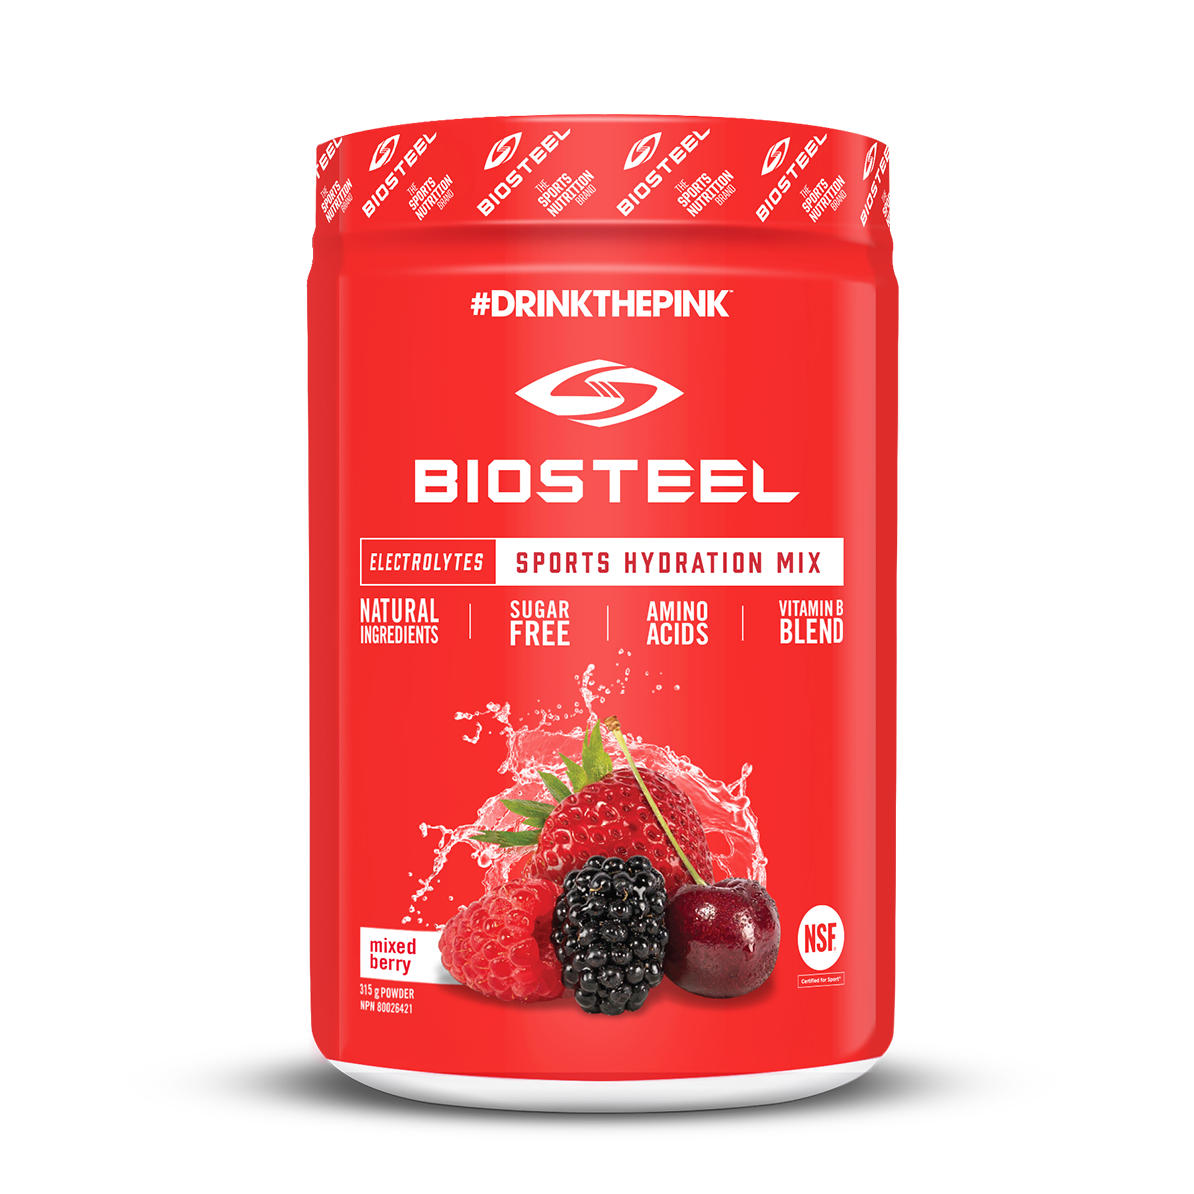 biosteel orange container